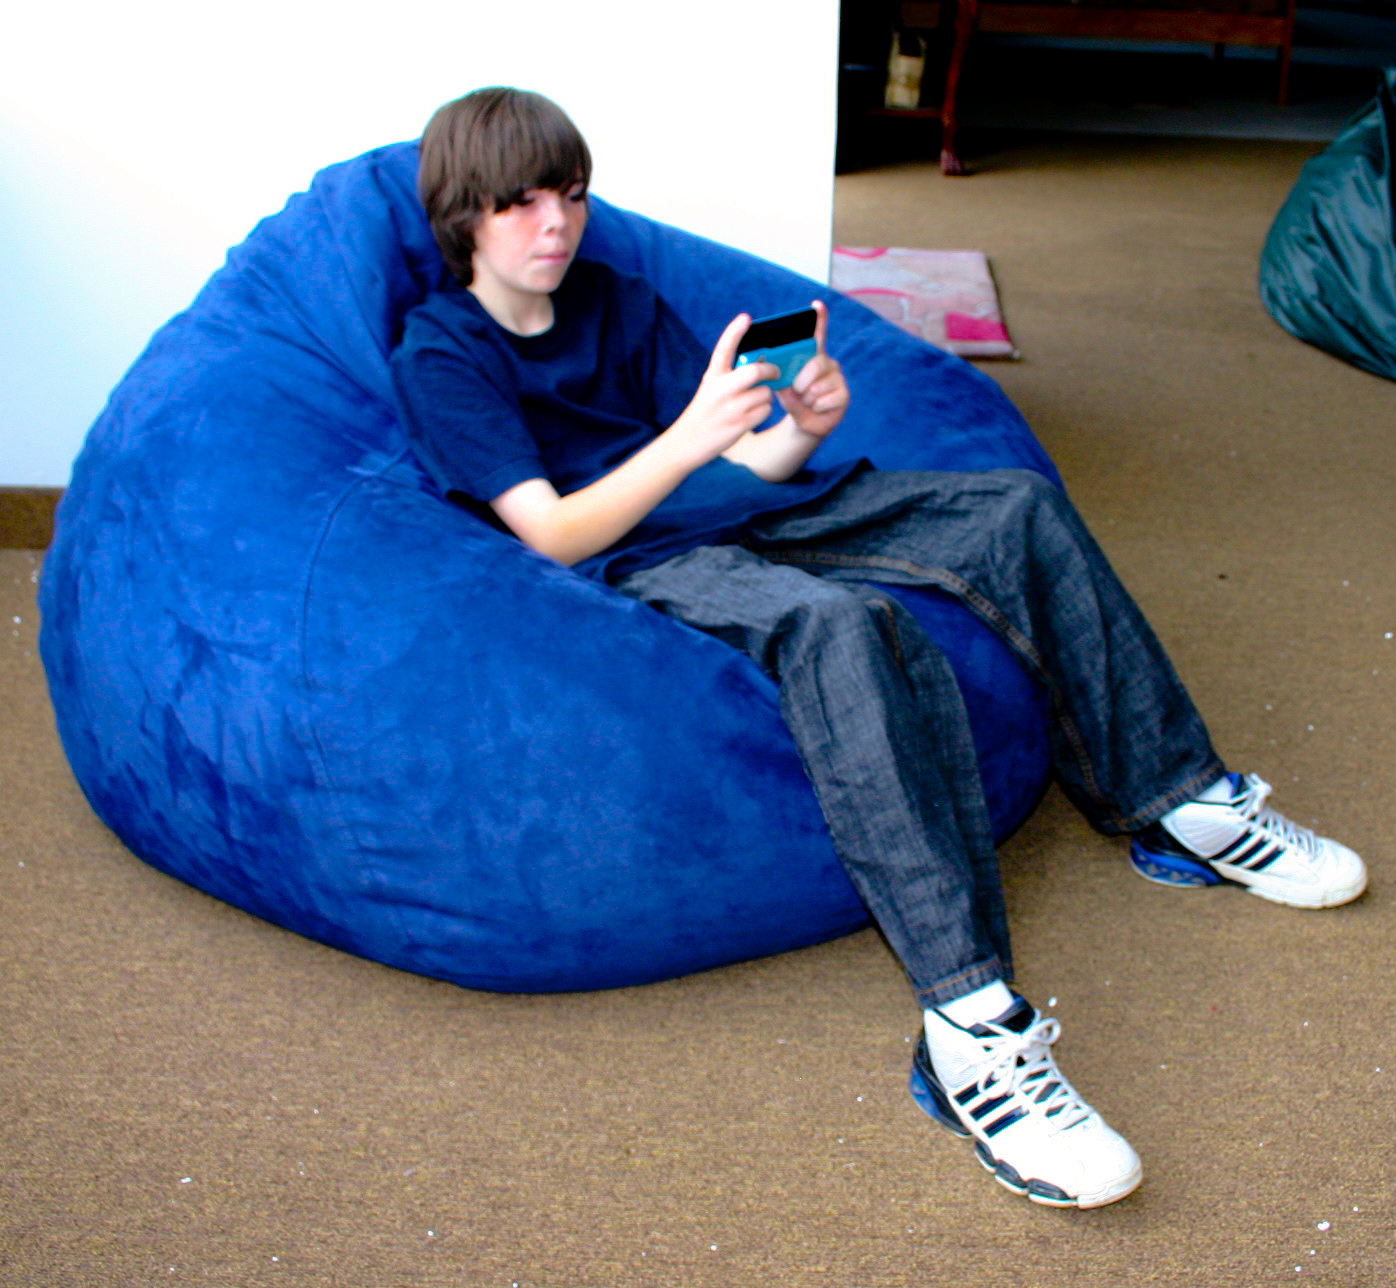 Sink Into Our Jumbo Size Bean Bagz Chair Makes A Great Gamer That Supports The Head And Neck For Playing Video Games Or Watching Tv